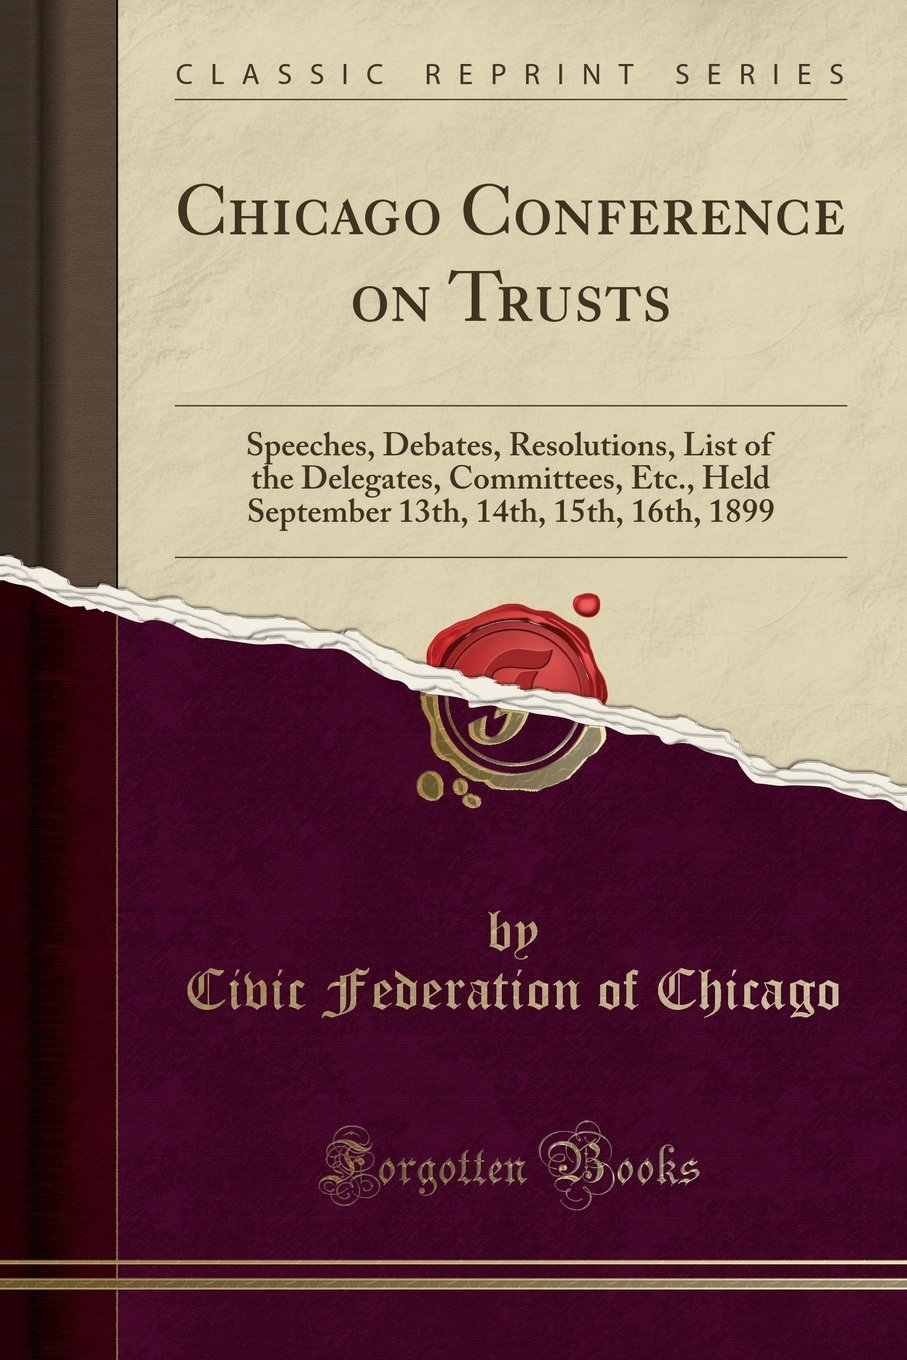 Chicago Conference on Trusts: Speeches, Debates, Resolutions, List of the Delegates, Committees, Etc., Held September 13th, 14th, 15th, 16th, 1899 (Classic Reprint) pdf